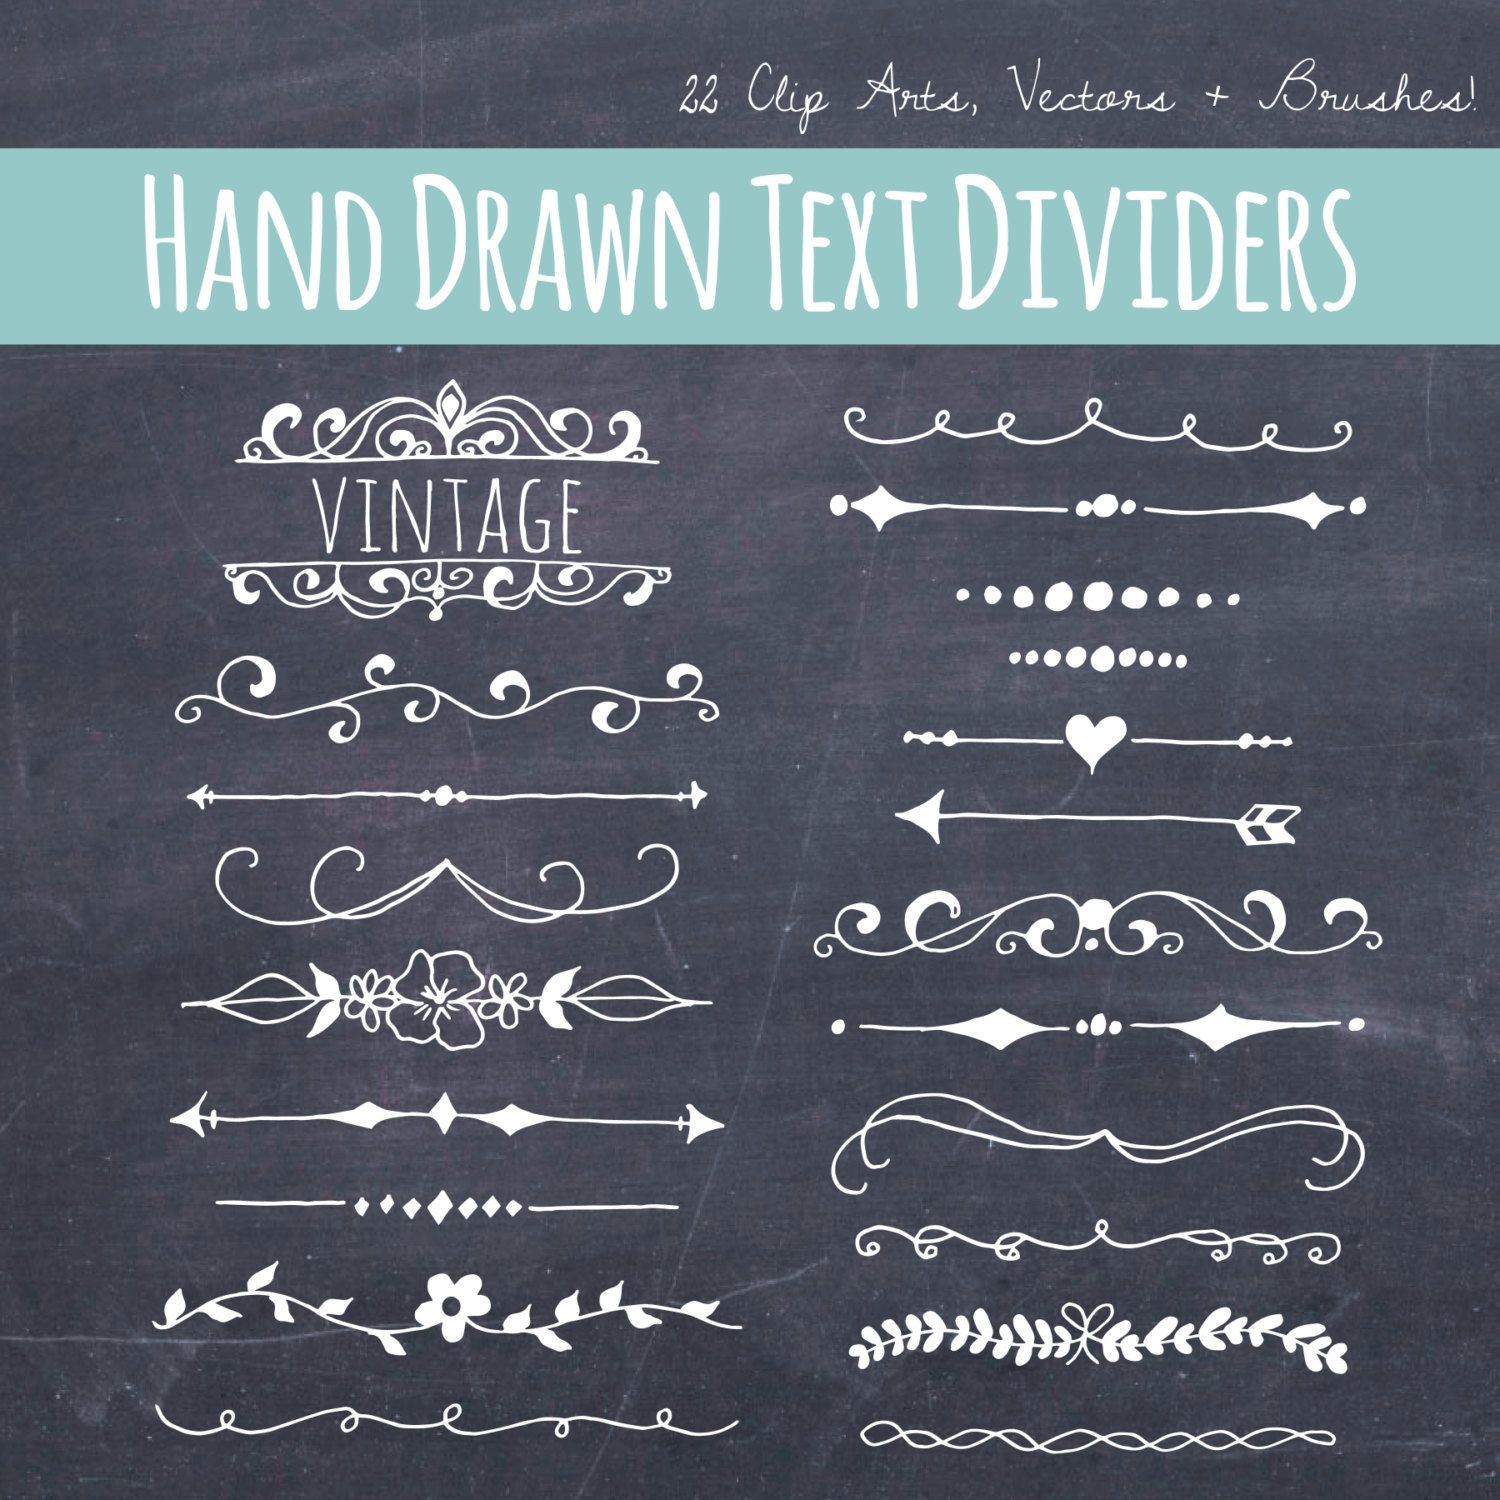 Clip art chalkboard text dividers plus photoshop brushes hand